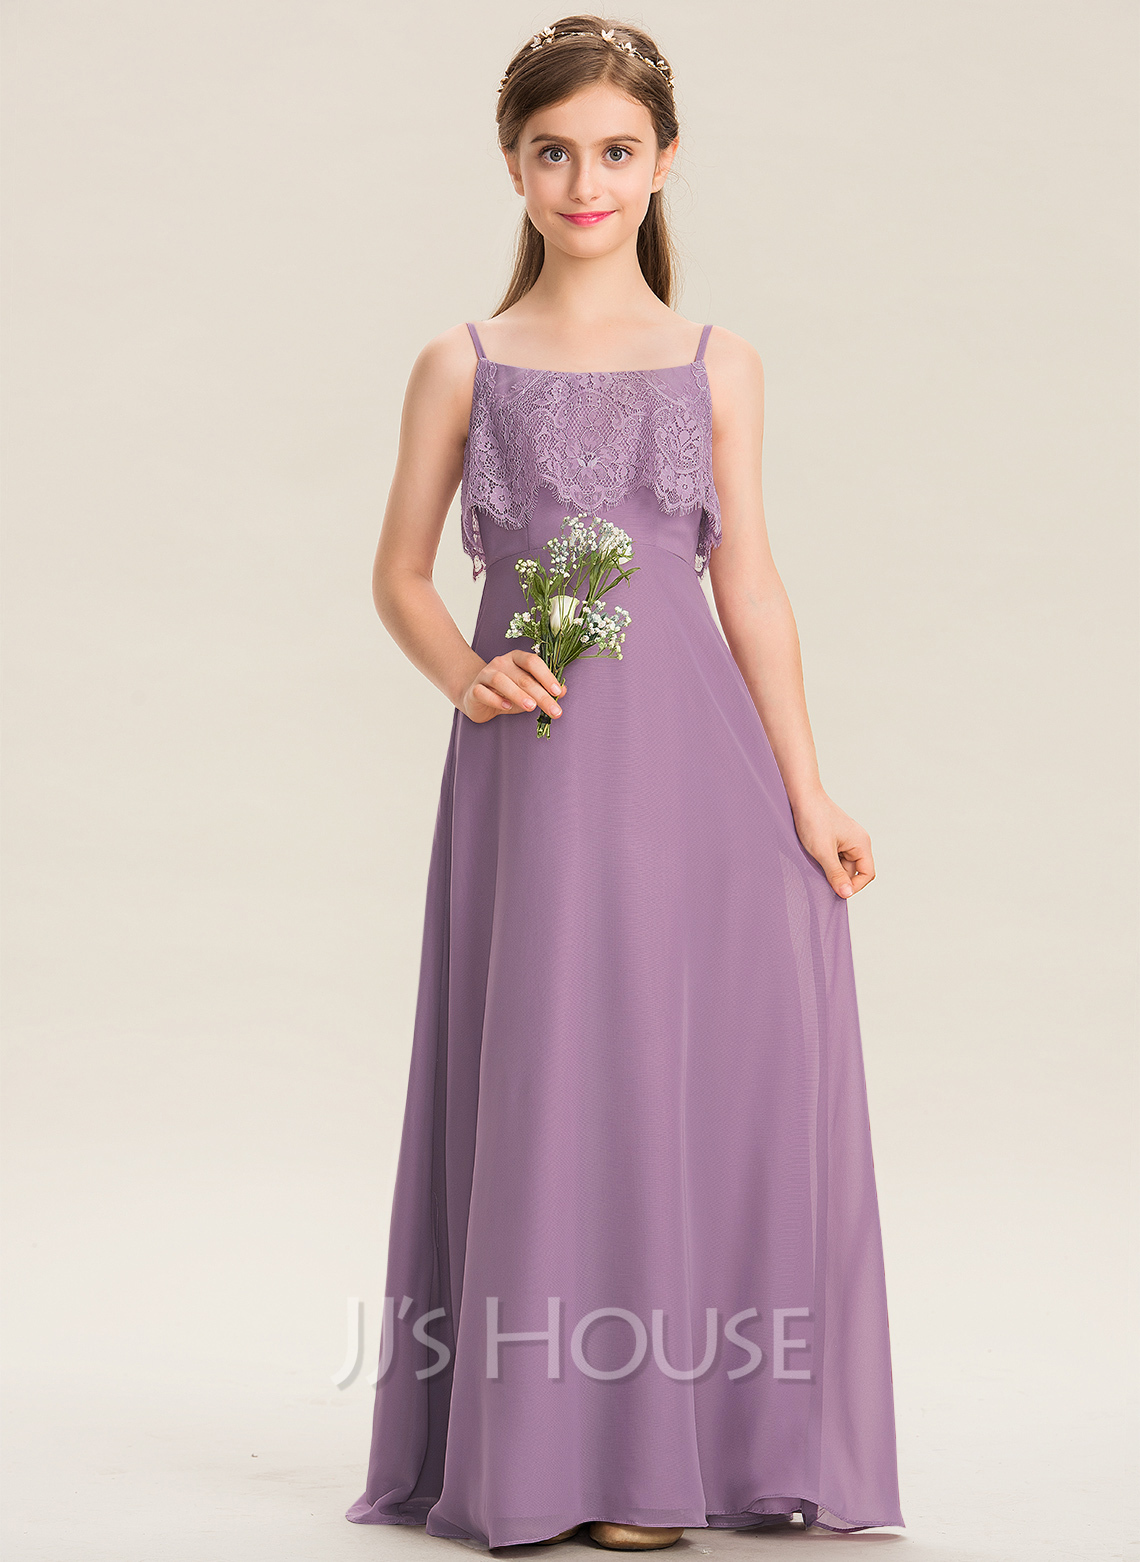 A-Line Square Neckline Floor-Length Chiffon Lace Junior Bridesmaid Dress